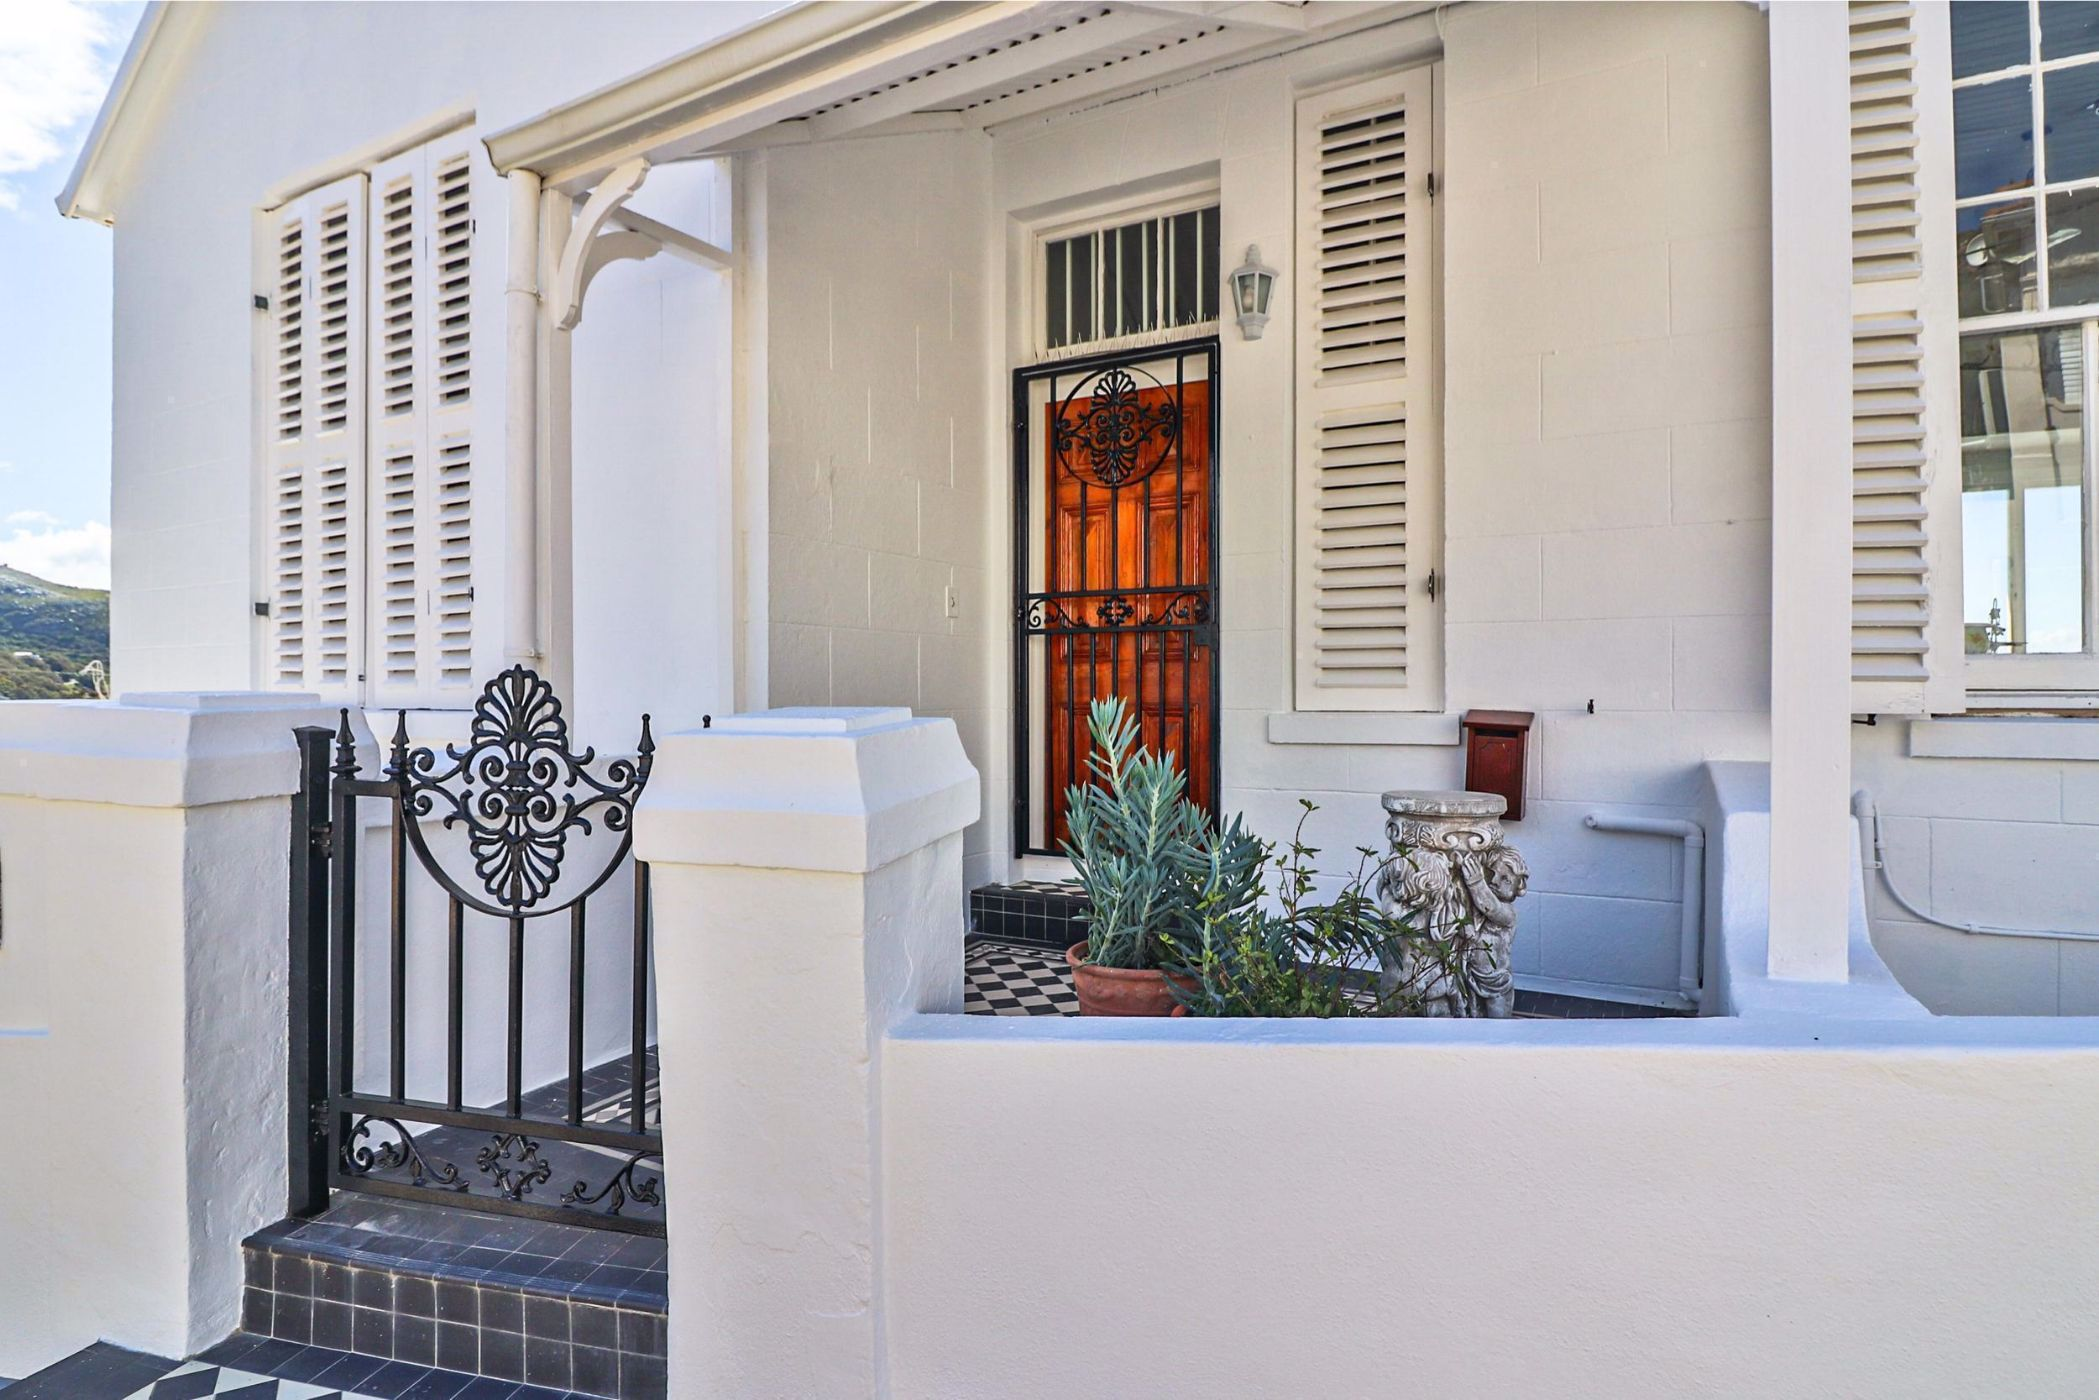 5 bedroom house for sale in Simons Town